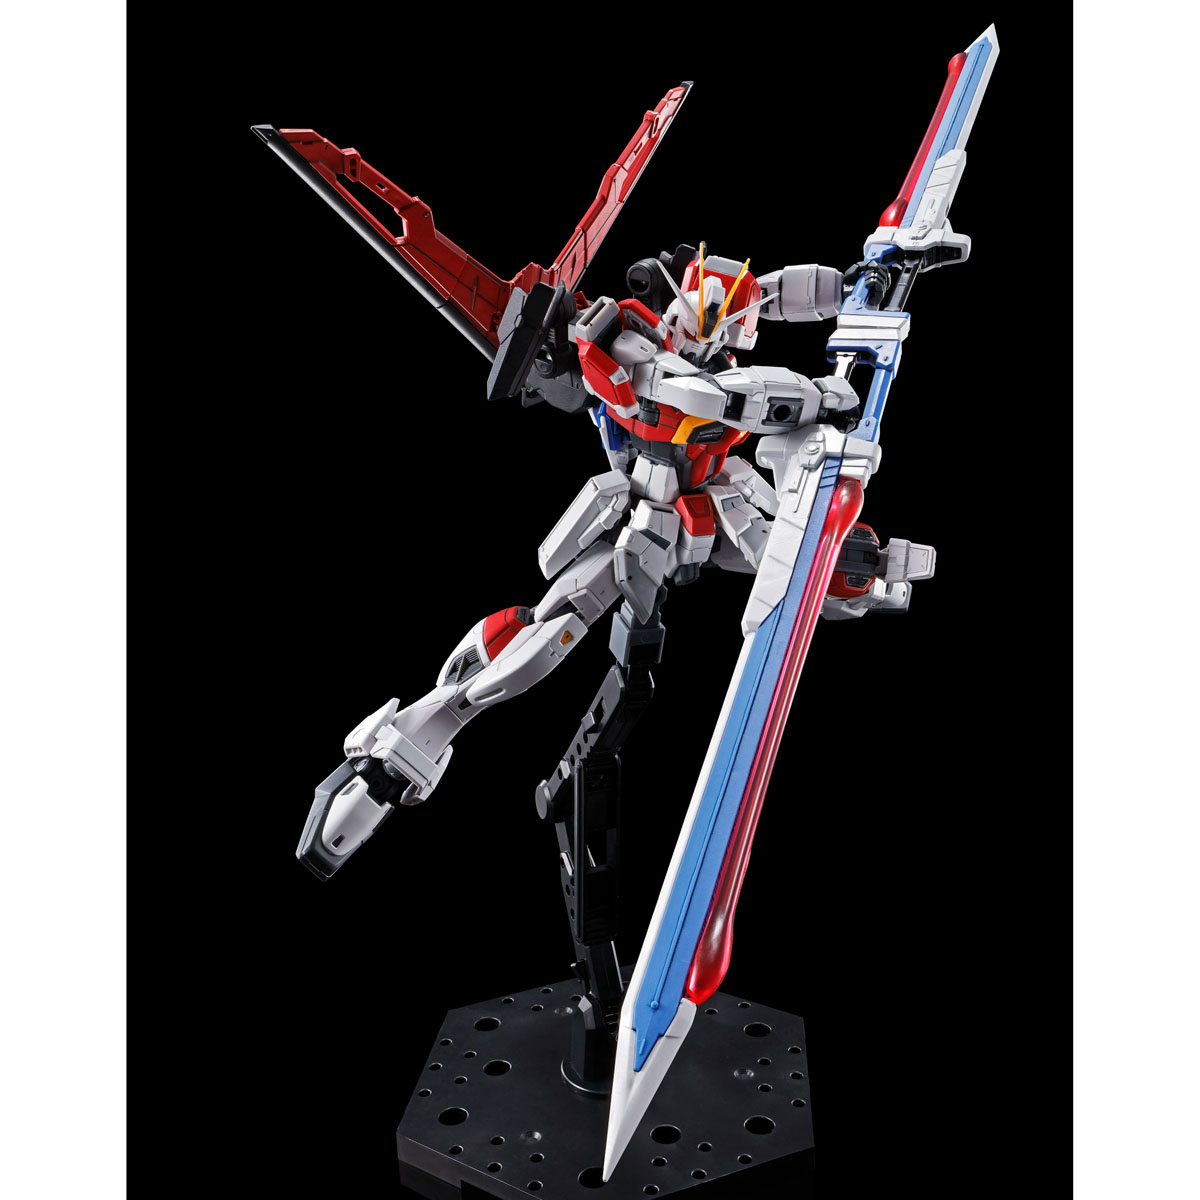 RG 1/144 SWORD IMPULSE GUNDAM [Dec 2020 Delivery]